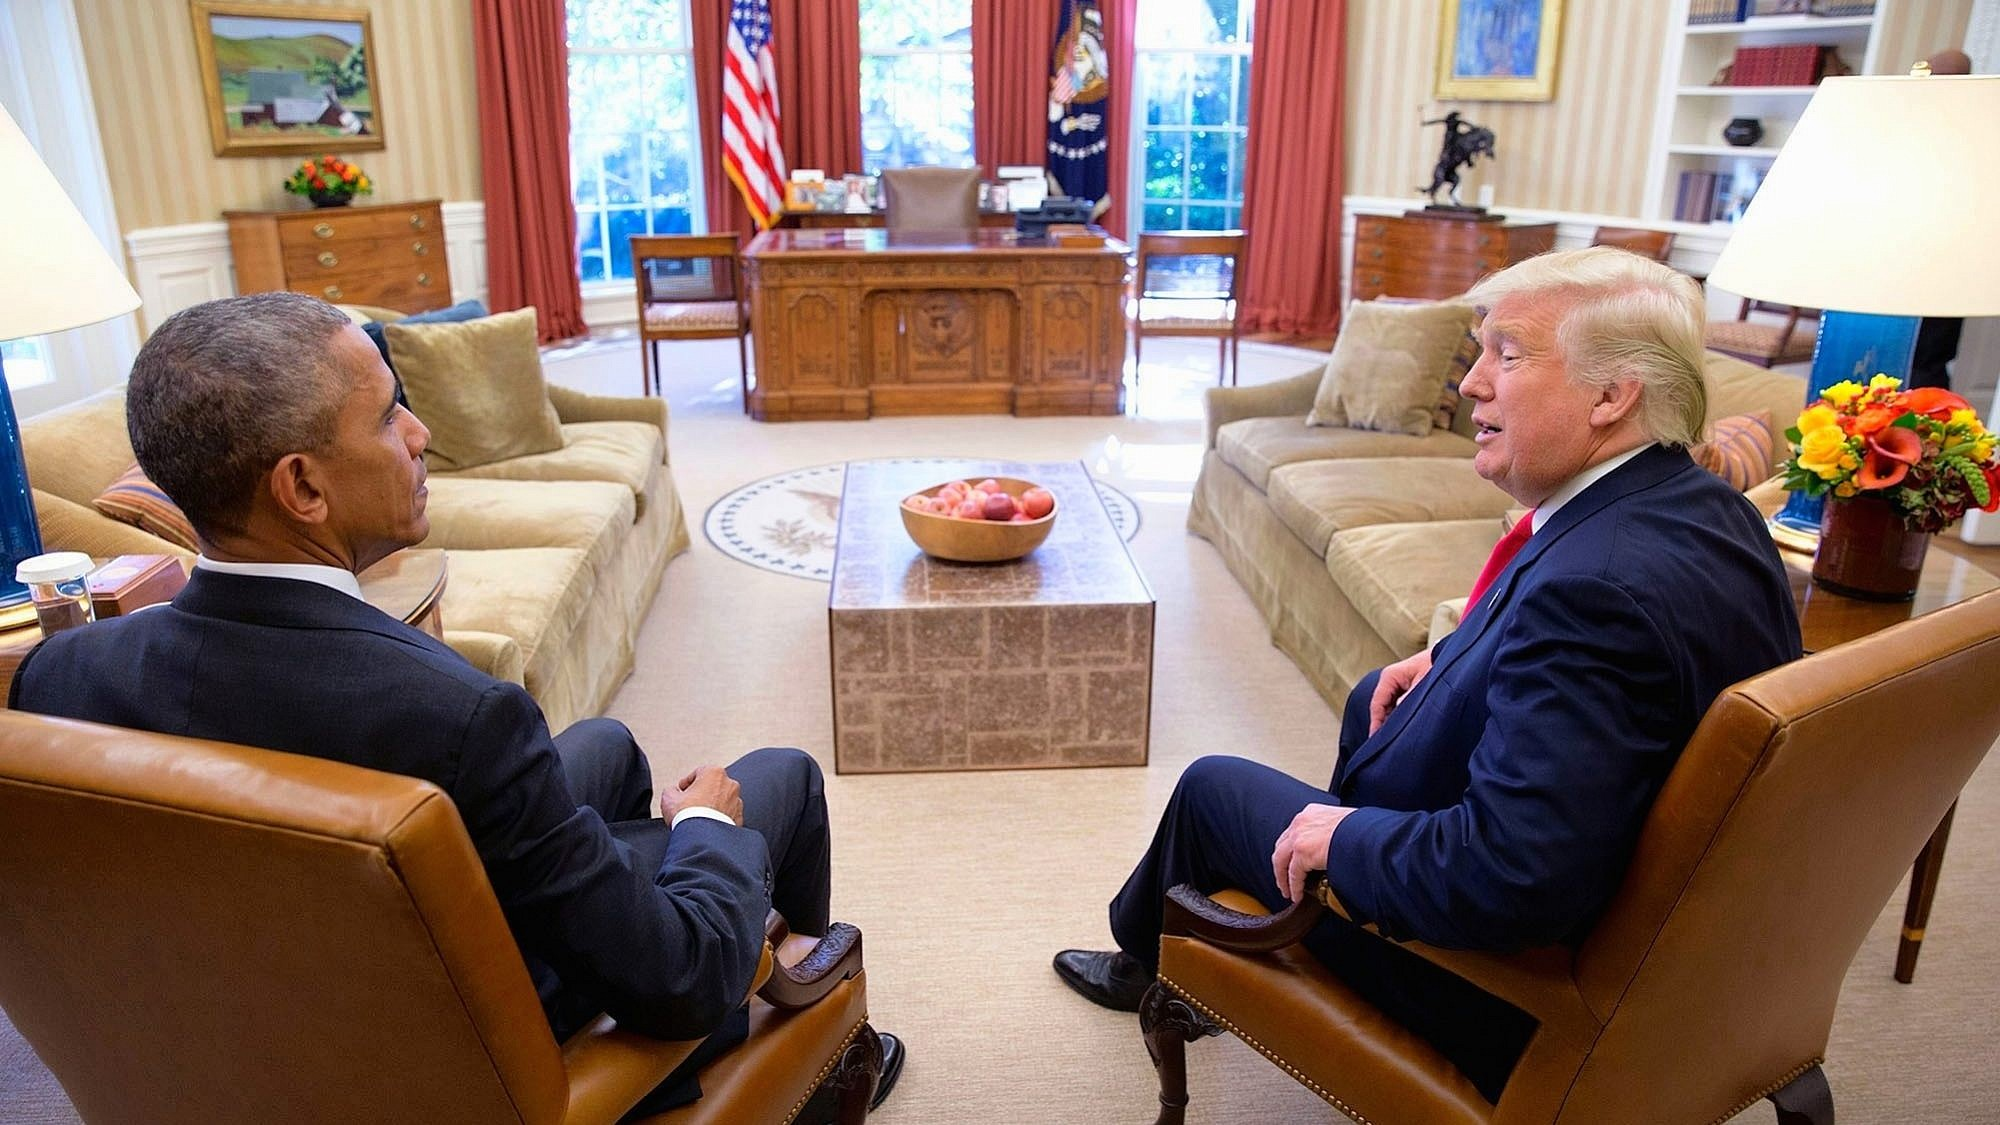 Two days after the U.S. presidential elections in 20016, President Barack Obama meets with president-elect Donald Trump in the Oval Office of the White House, Nov. 10, 2016. Credit: White House/Pete Souza.